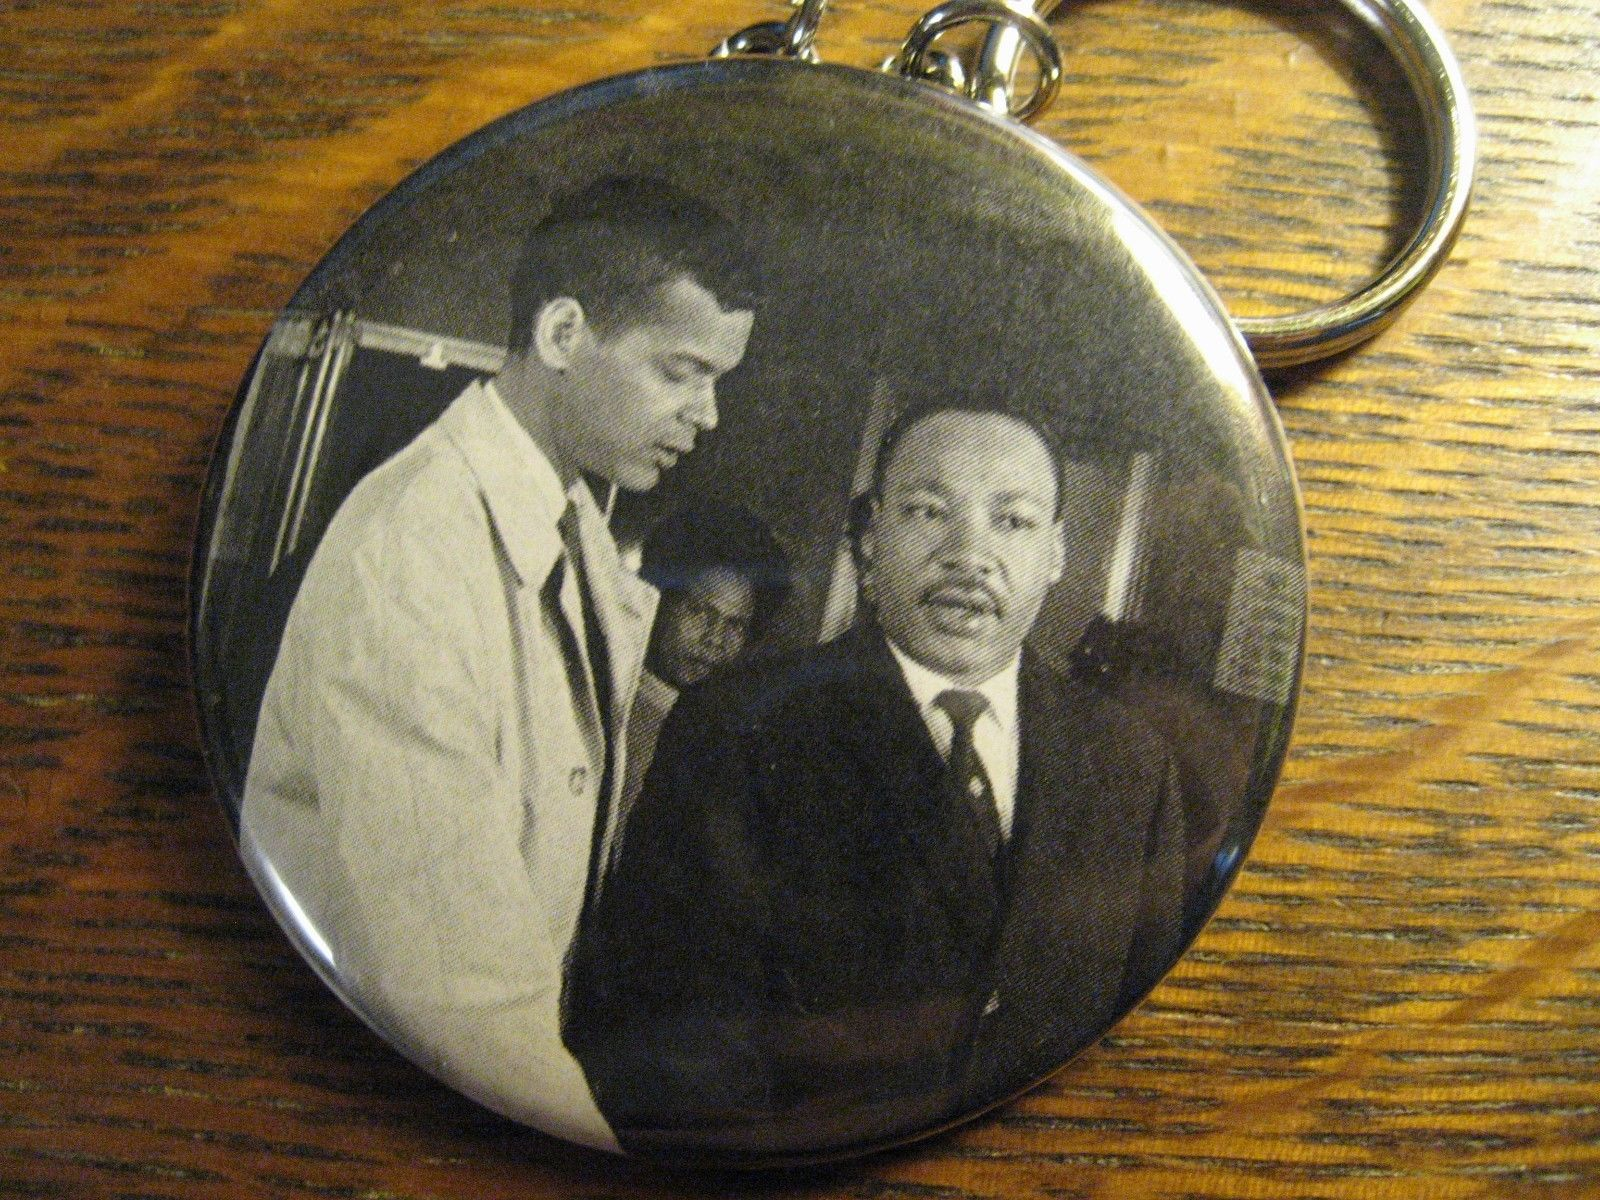 Julian Bond Keychain -  Repurposed Civil Rights Backpack Purse Clip Ornament